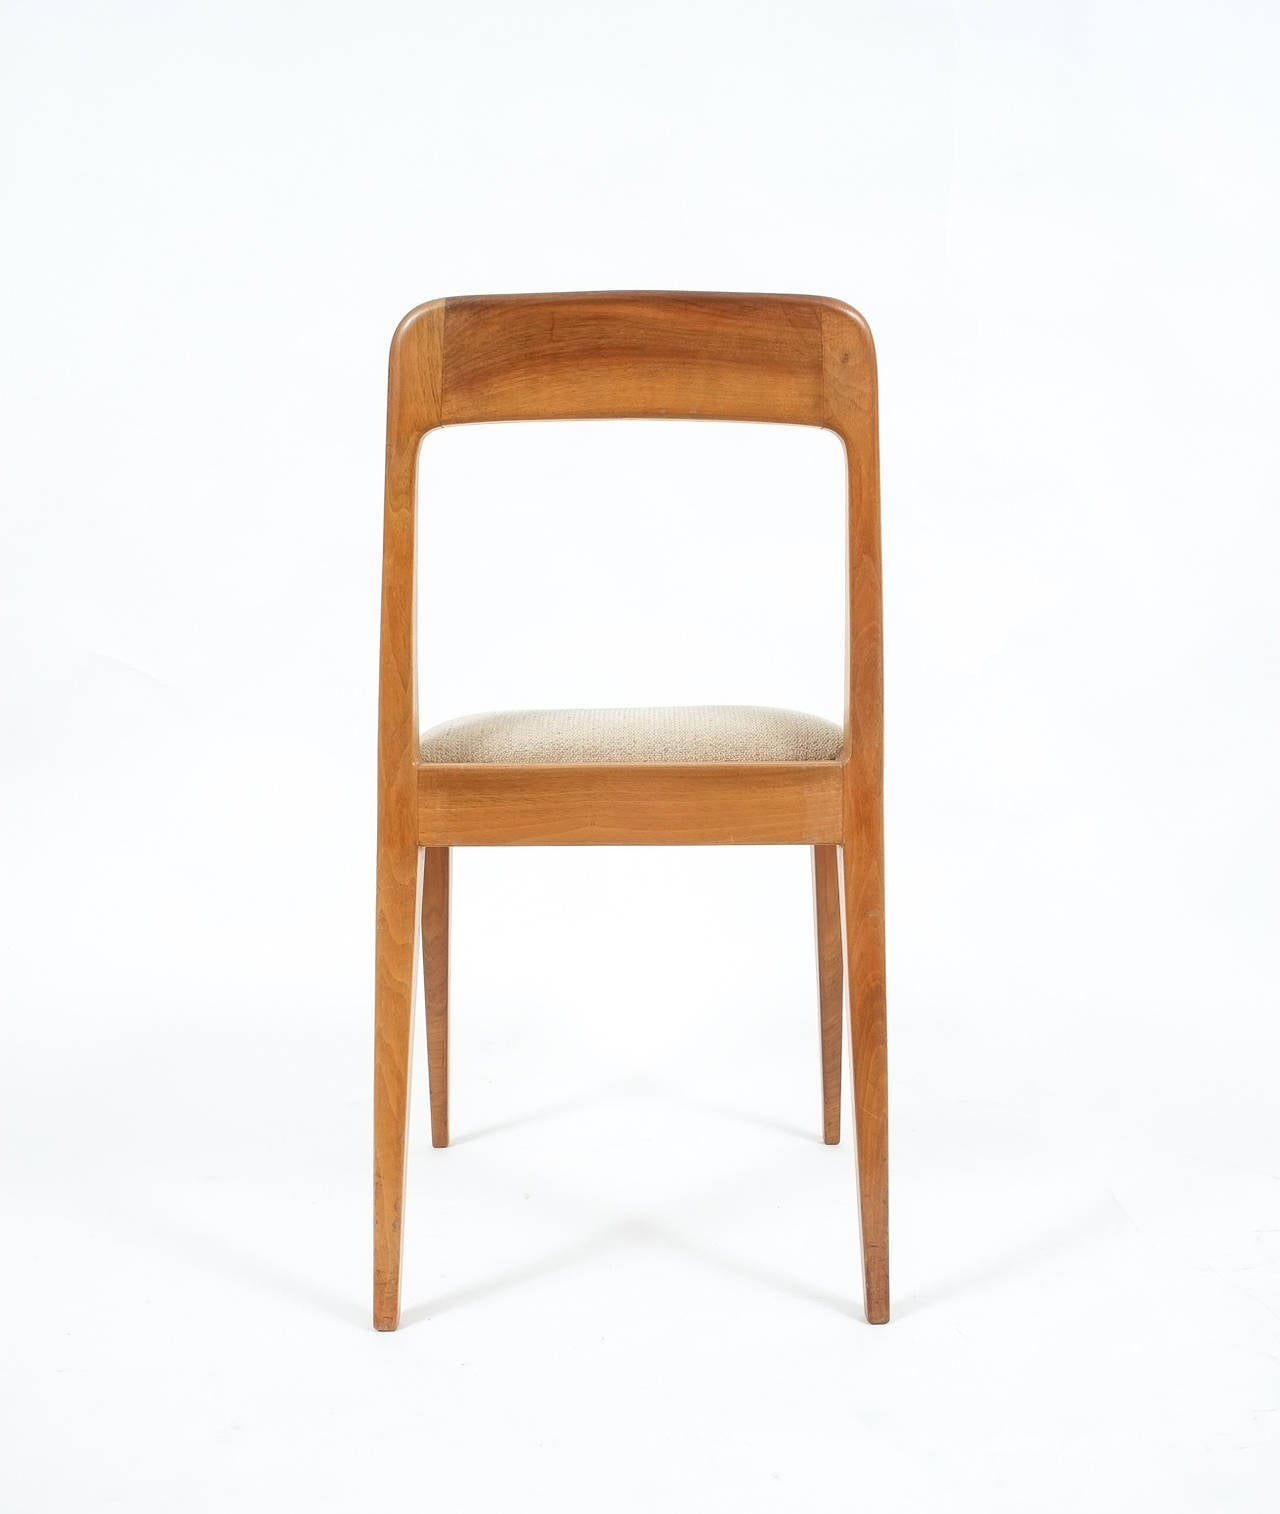 Set of Six Carl Auböck Wooden Chairs Mid-Century, 1950 In Good Condition For Sale In Vienna, AT